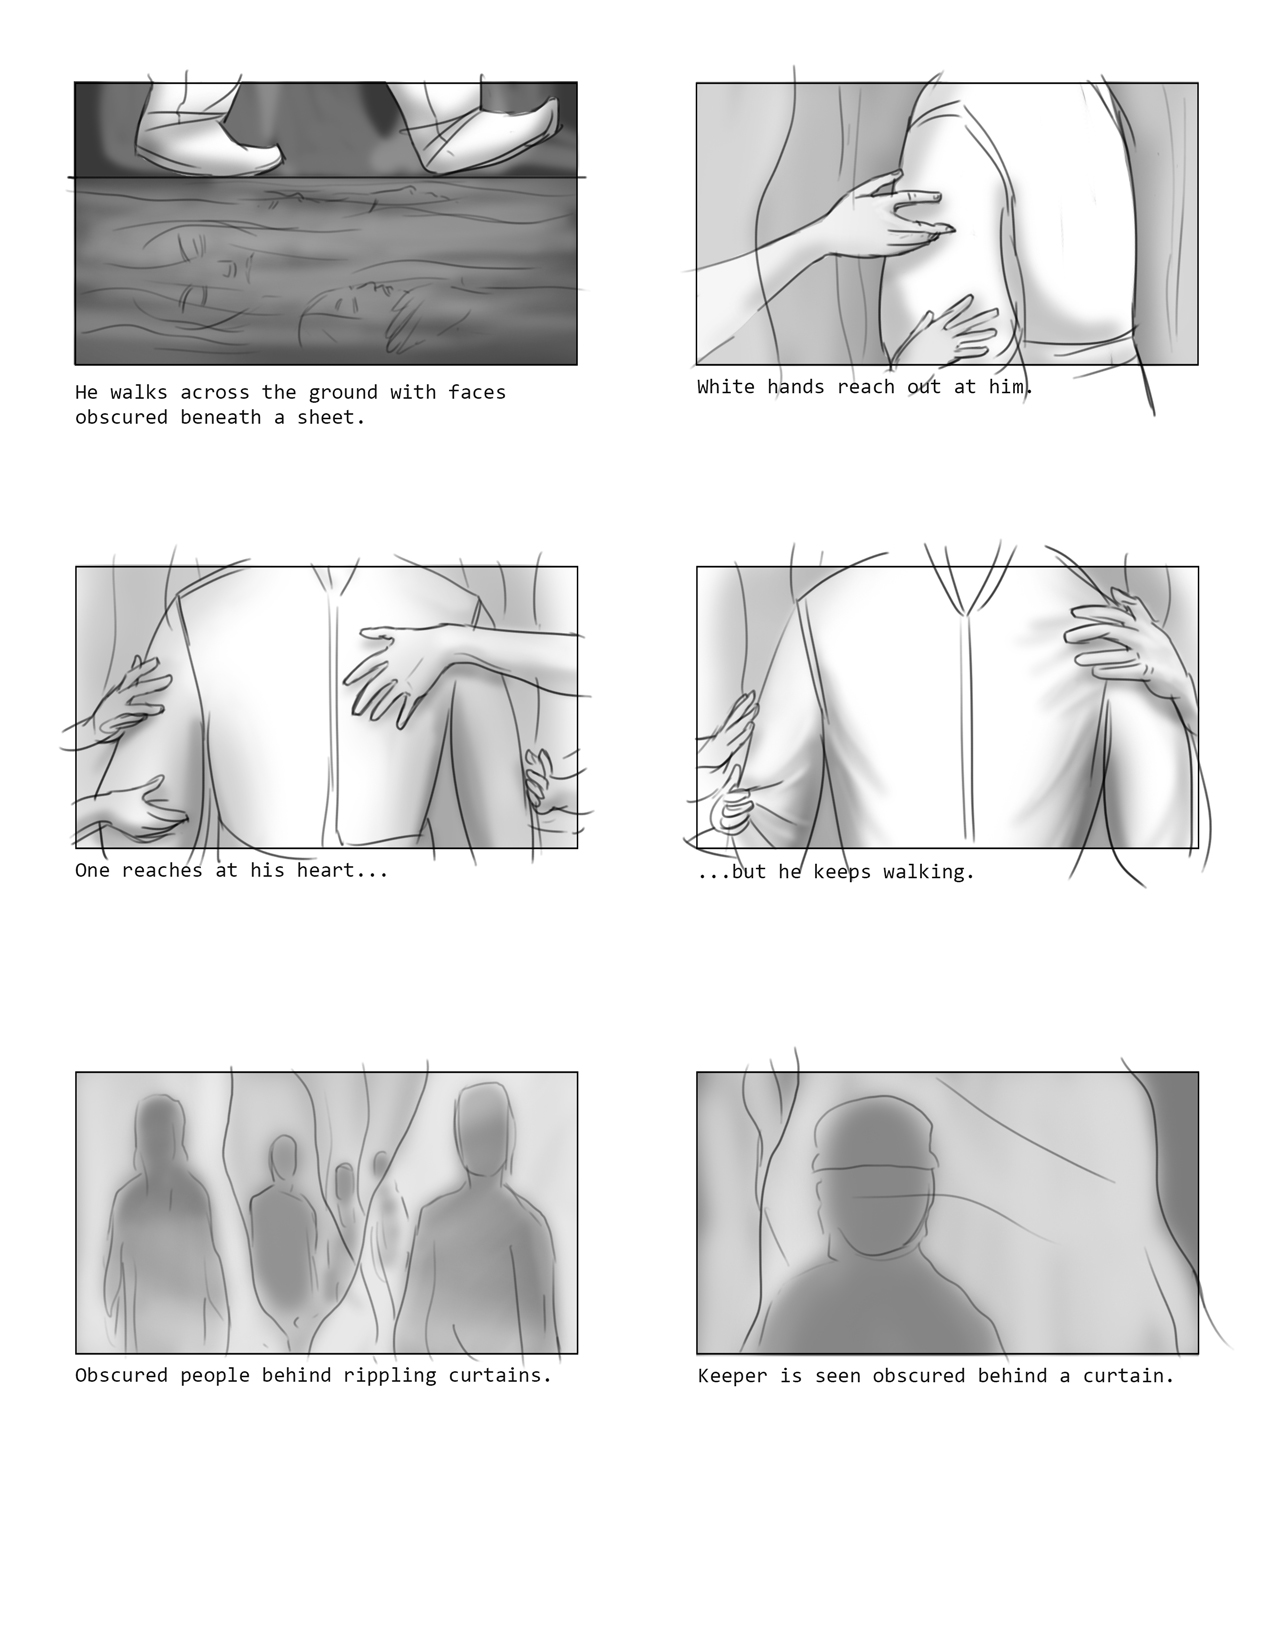 velorenstoryboards12.jpg